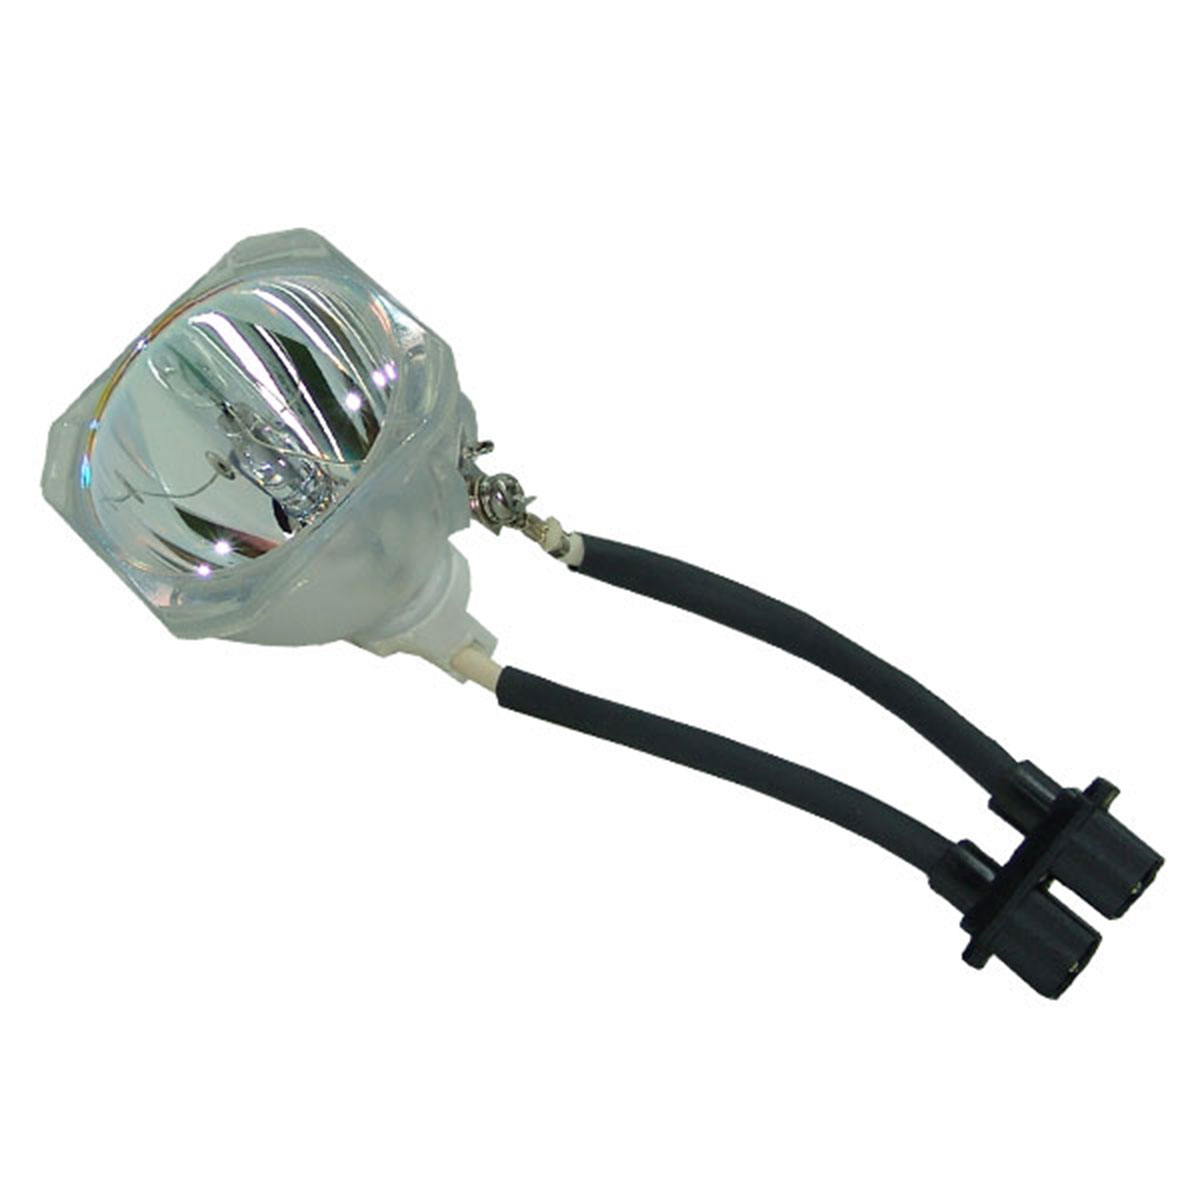 Compatible Bare Bulb EC.J0401.002 SHP69 for Acer PD116 Projector Bulb Lamp without housing ec j0401 002 for acer pd116 projector lamp bulb with housing